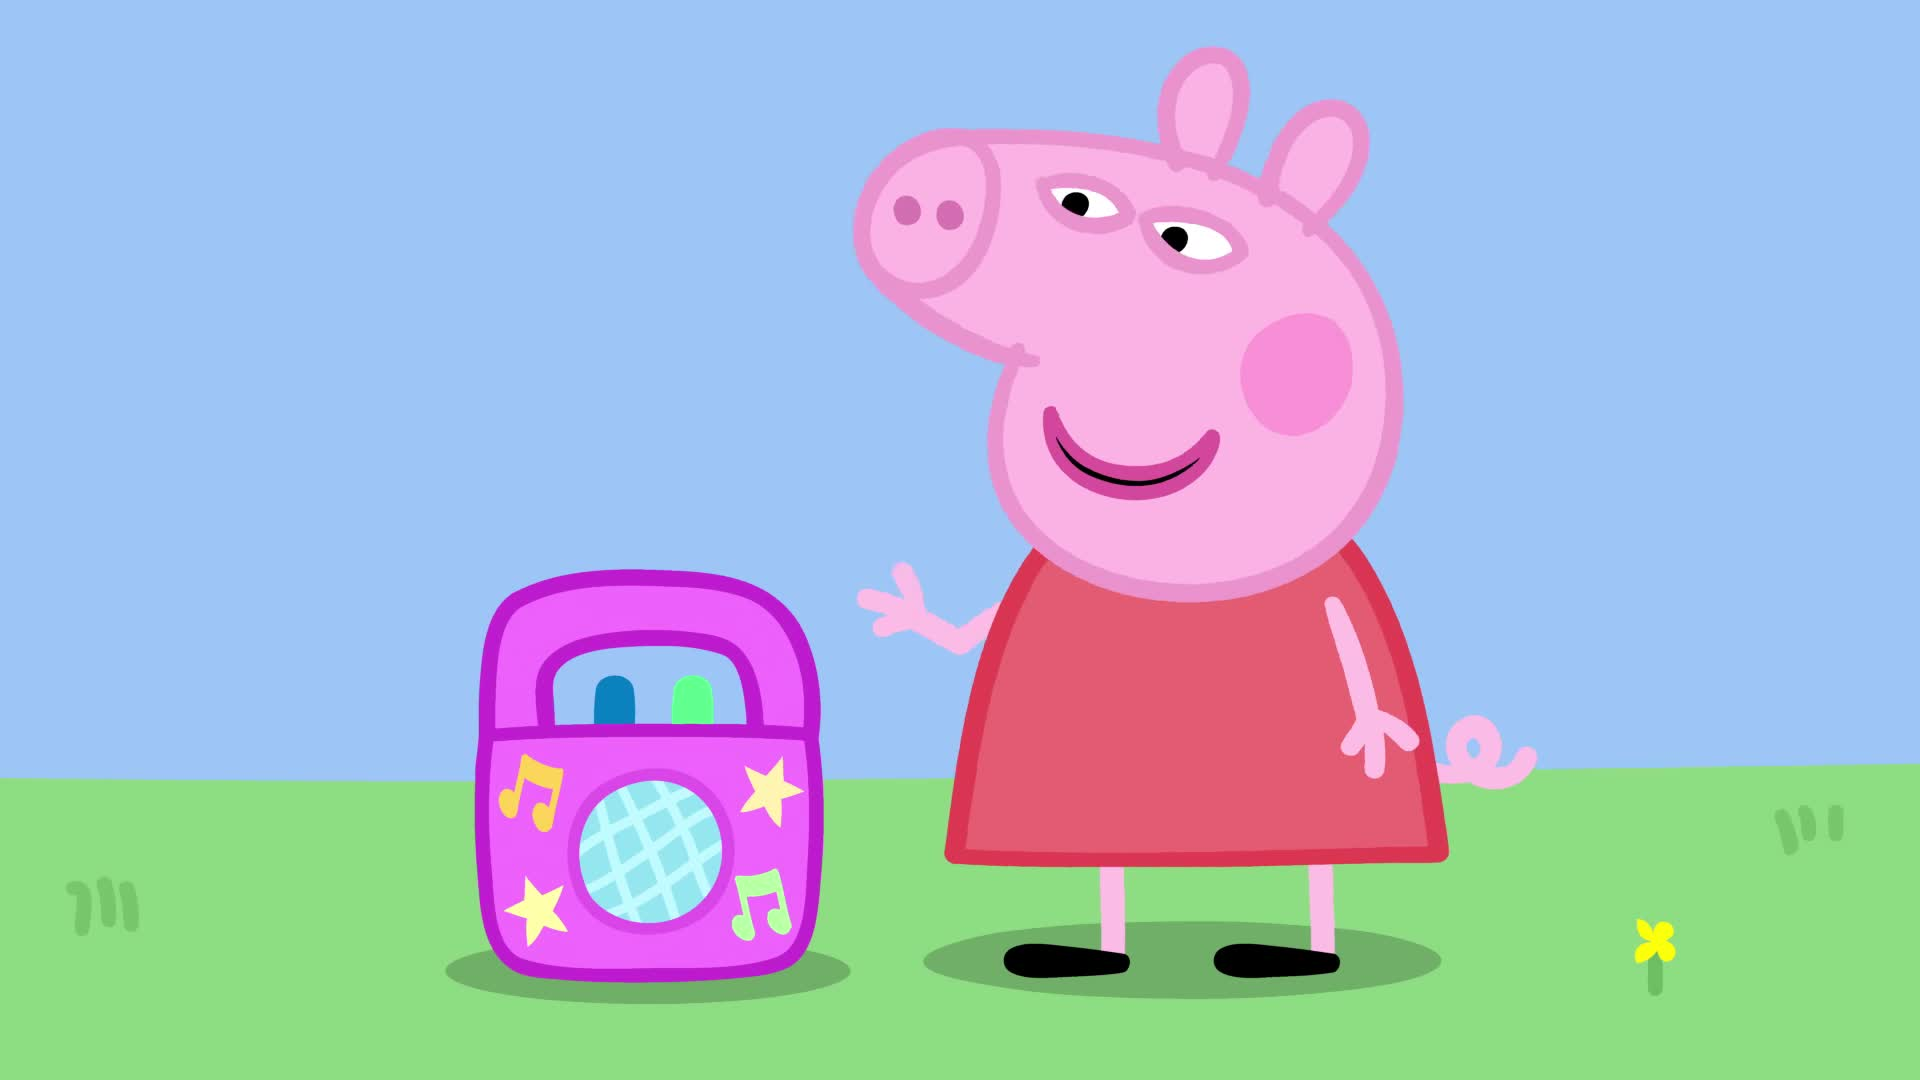 Peppa Pig English Episodes Gifs Search Search Share On Homdor